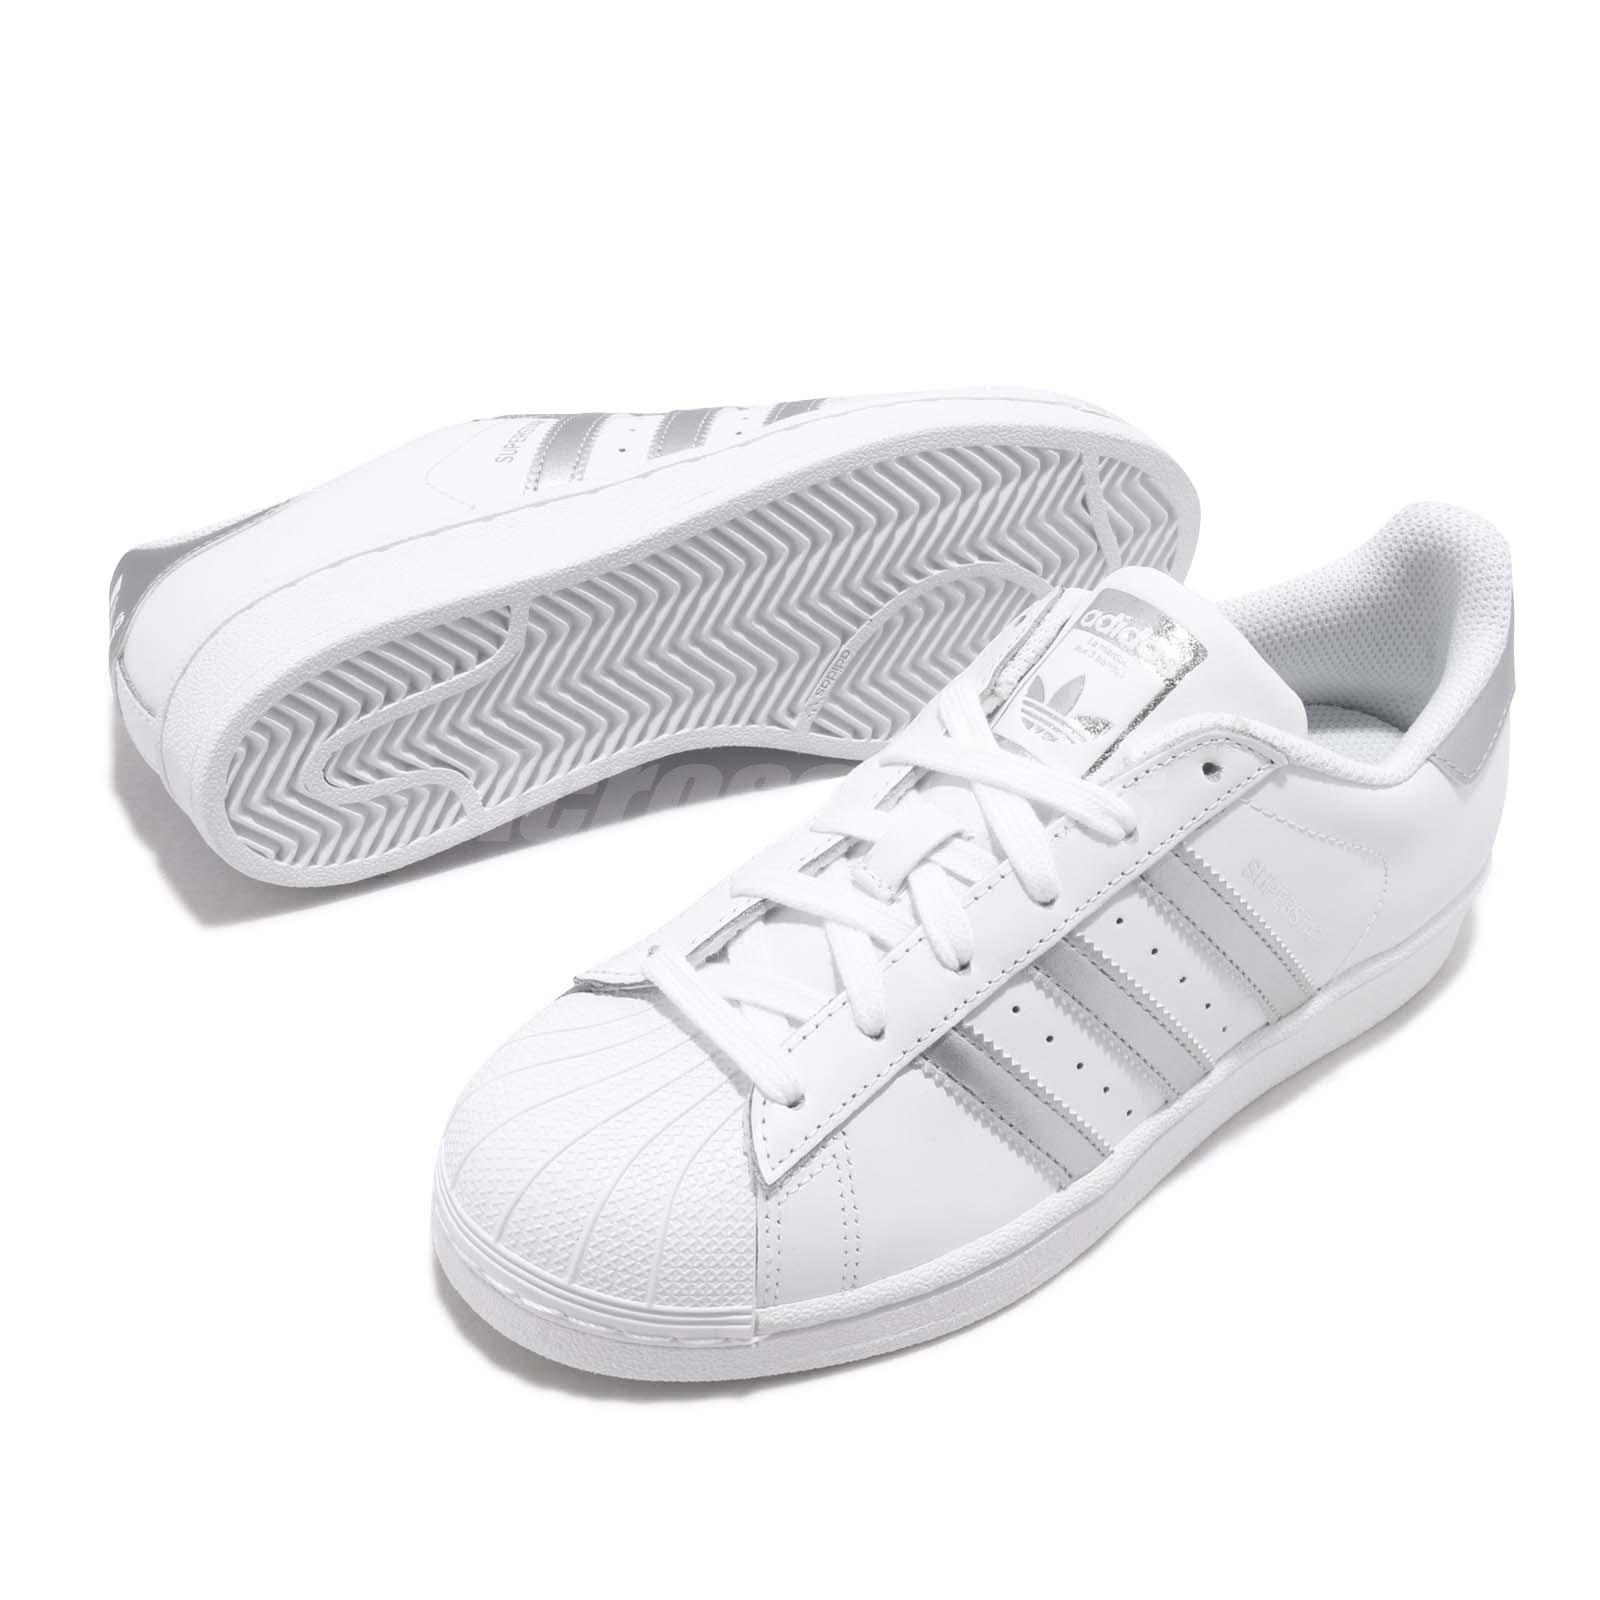 Details about adidas Originals Superstar FD White Silver Men Women Casual  Shoes Sneaker F36581 229eacf67